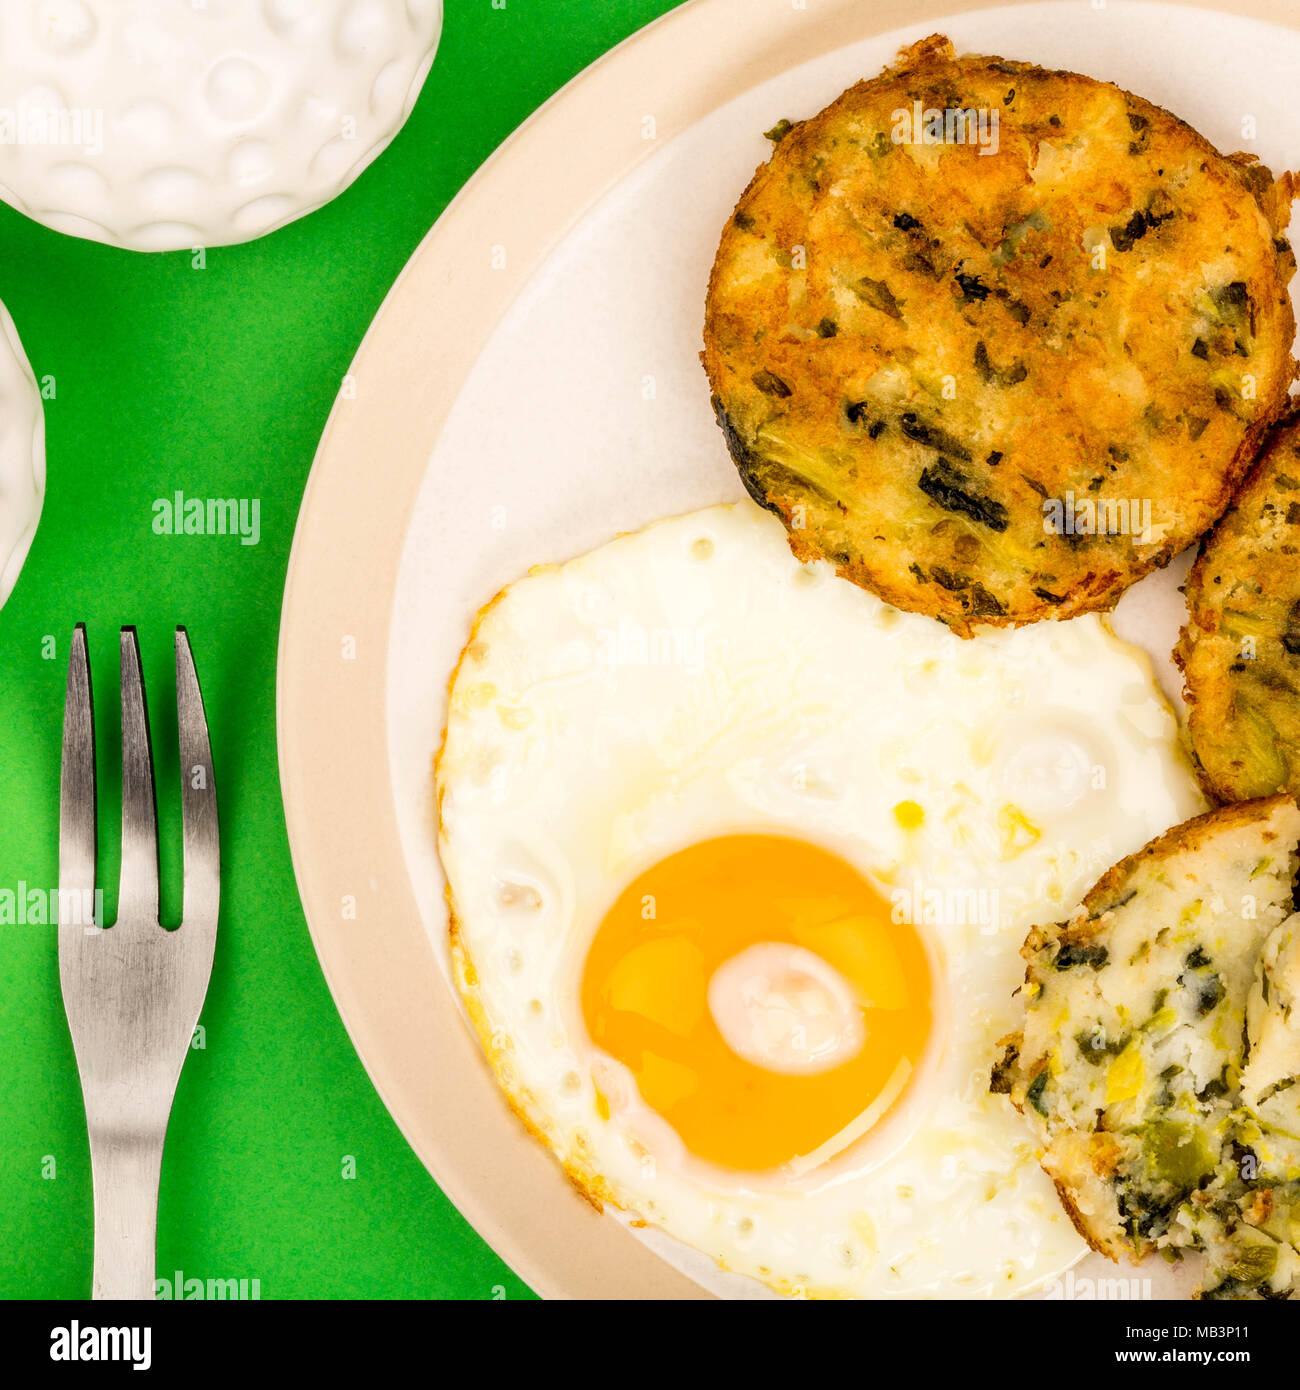 Cooked Vegetarian Bubble And Squeak Cakes With A Fried Egg Against A Green Background - Stock Image